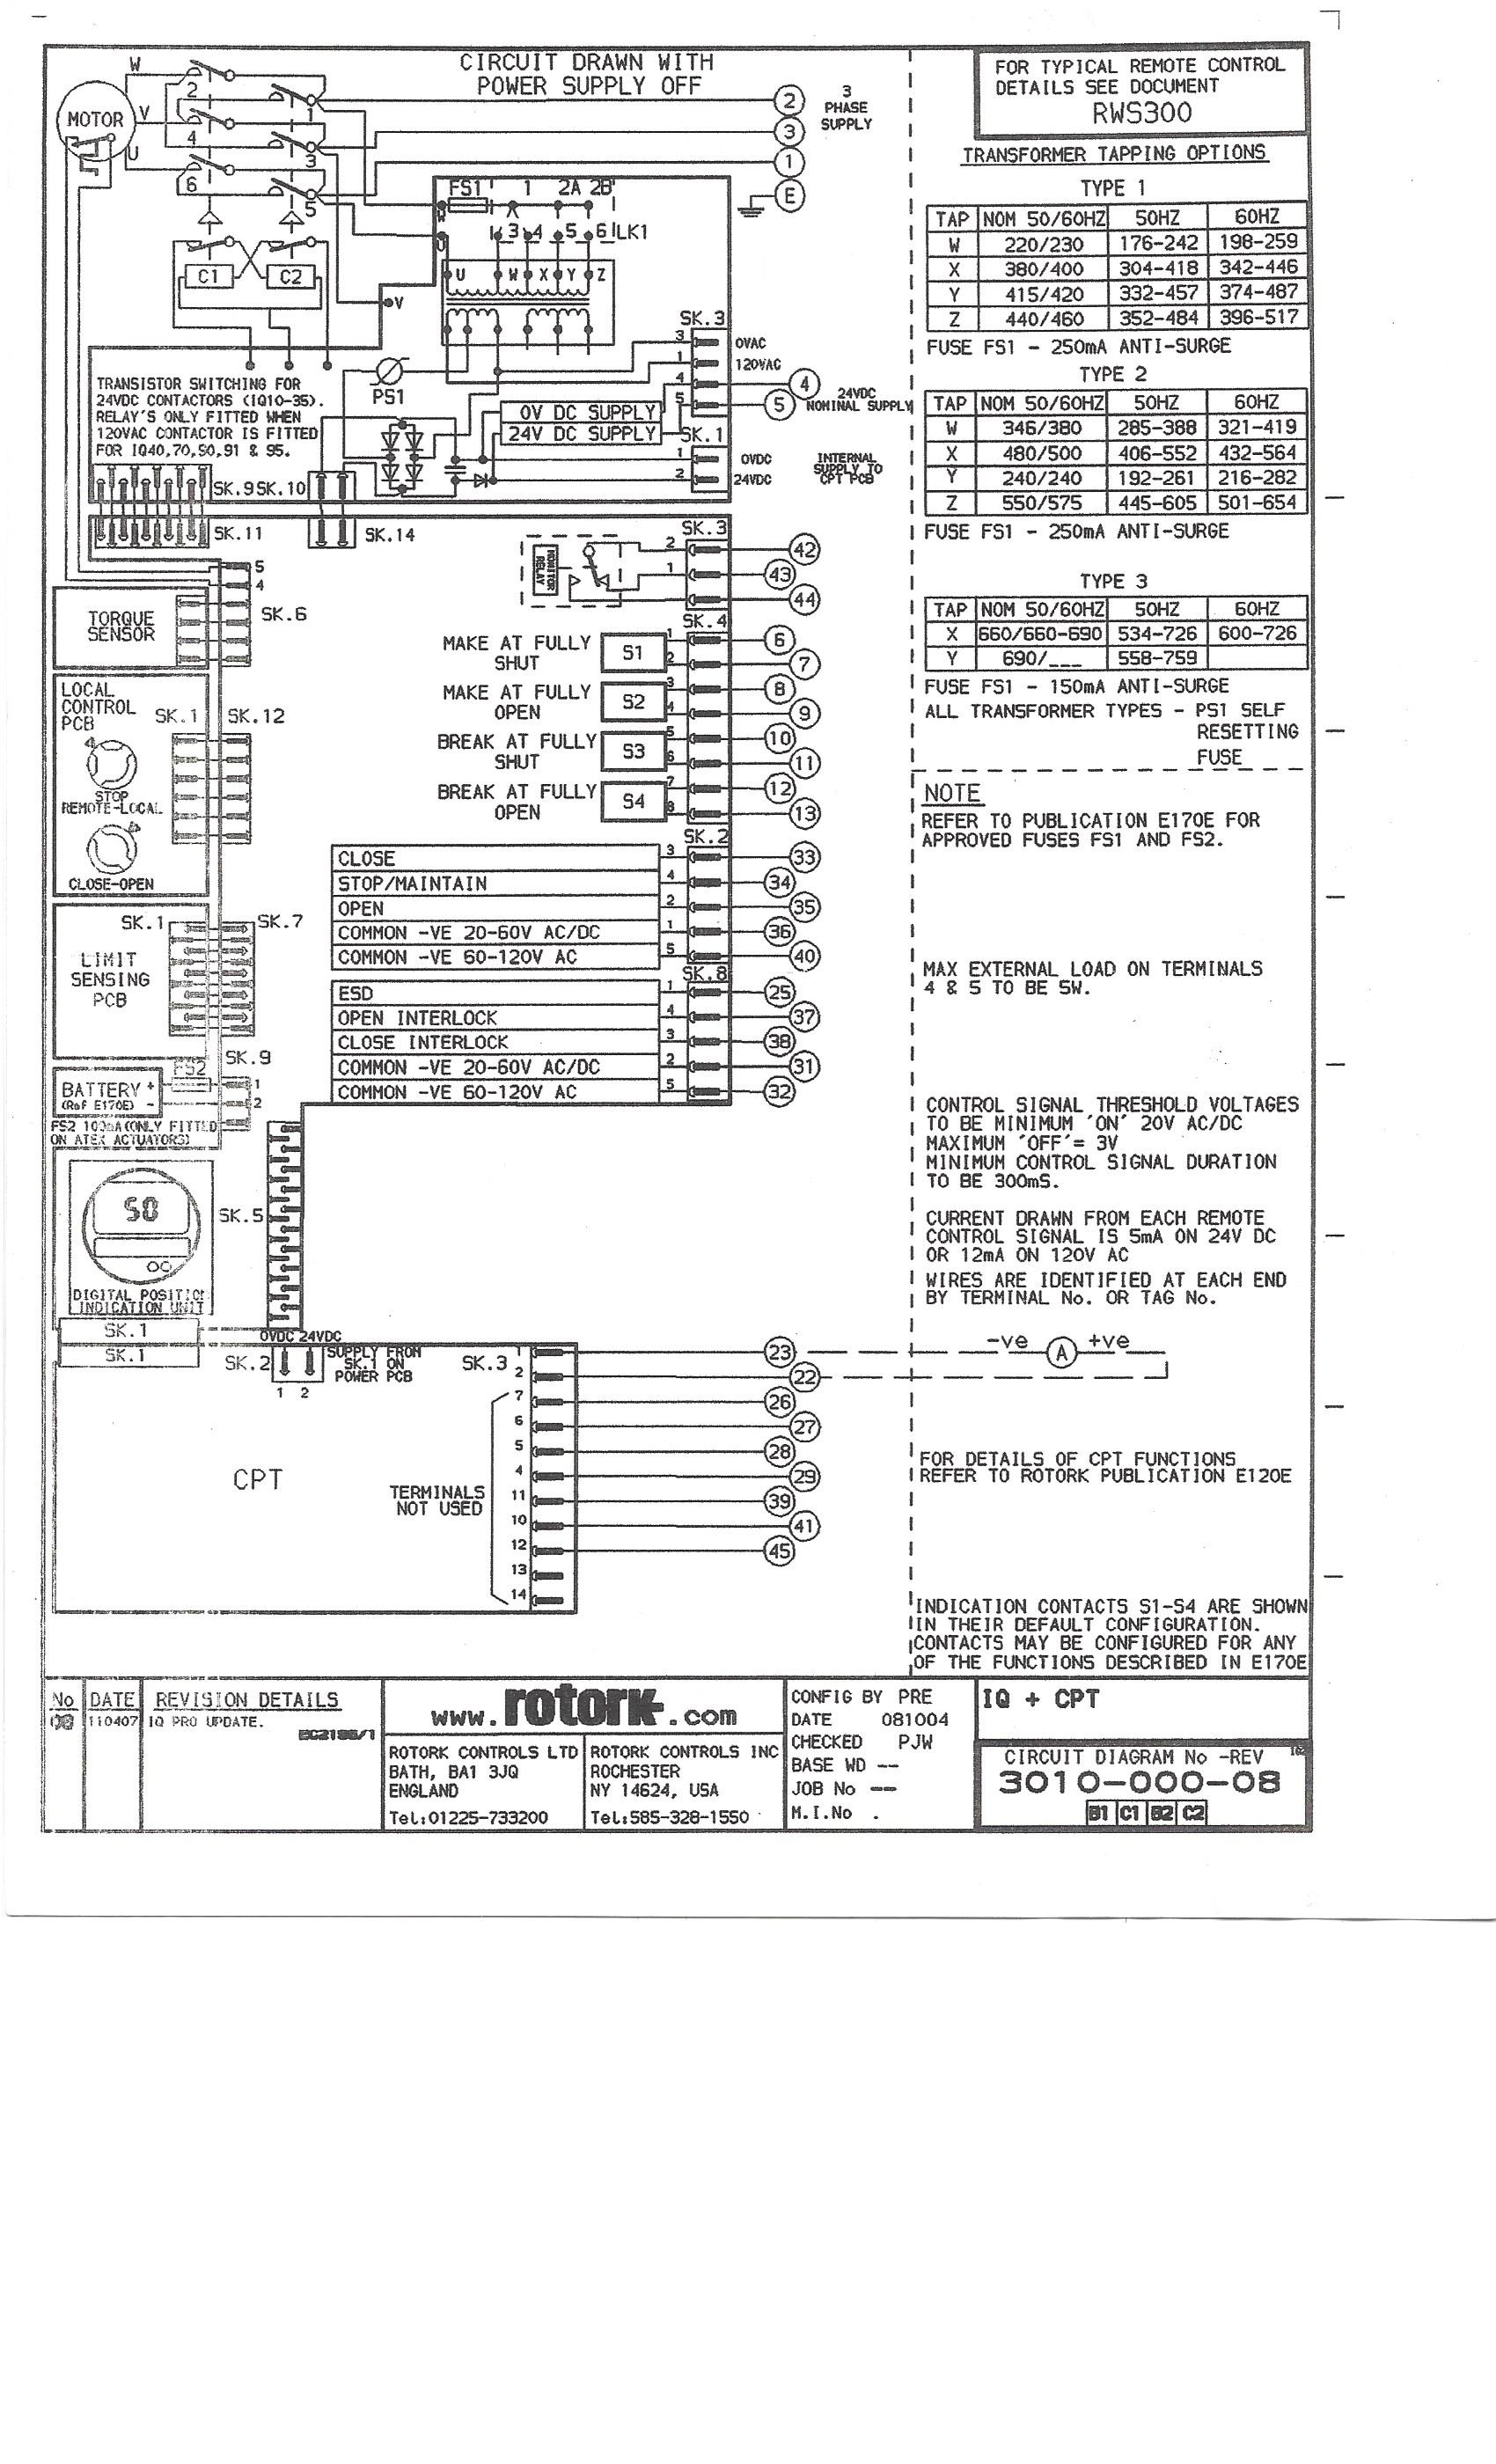 VELAN2 rotork iqt wiring diagram siemens wiring diagram \u2022 wiring diagrams rotork actuator wiring diagrams at soozxer.org